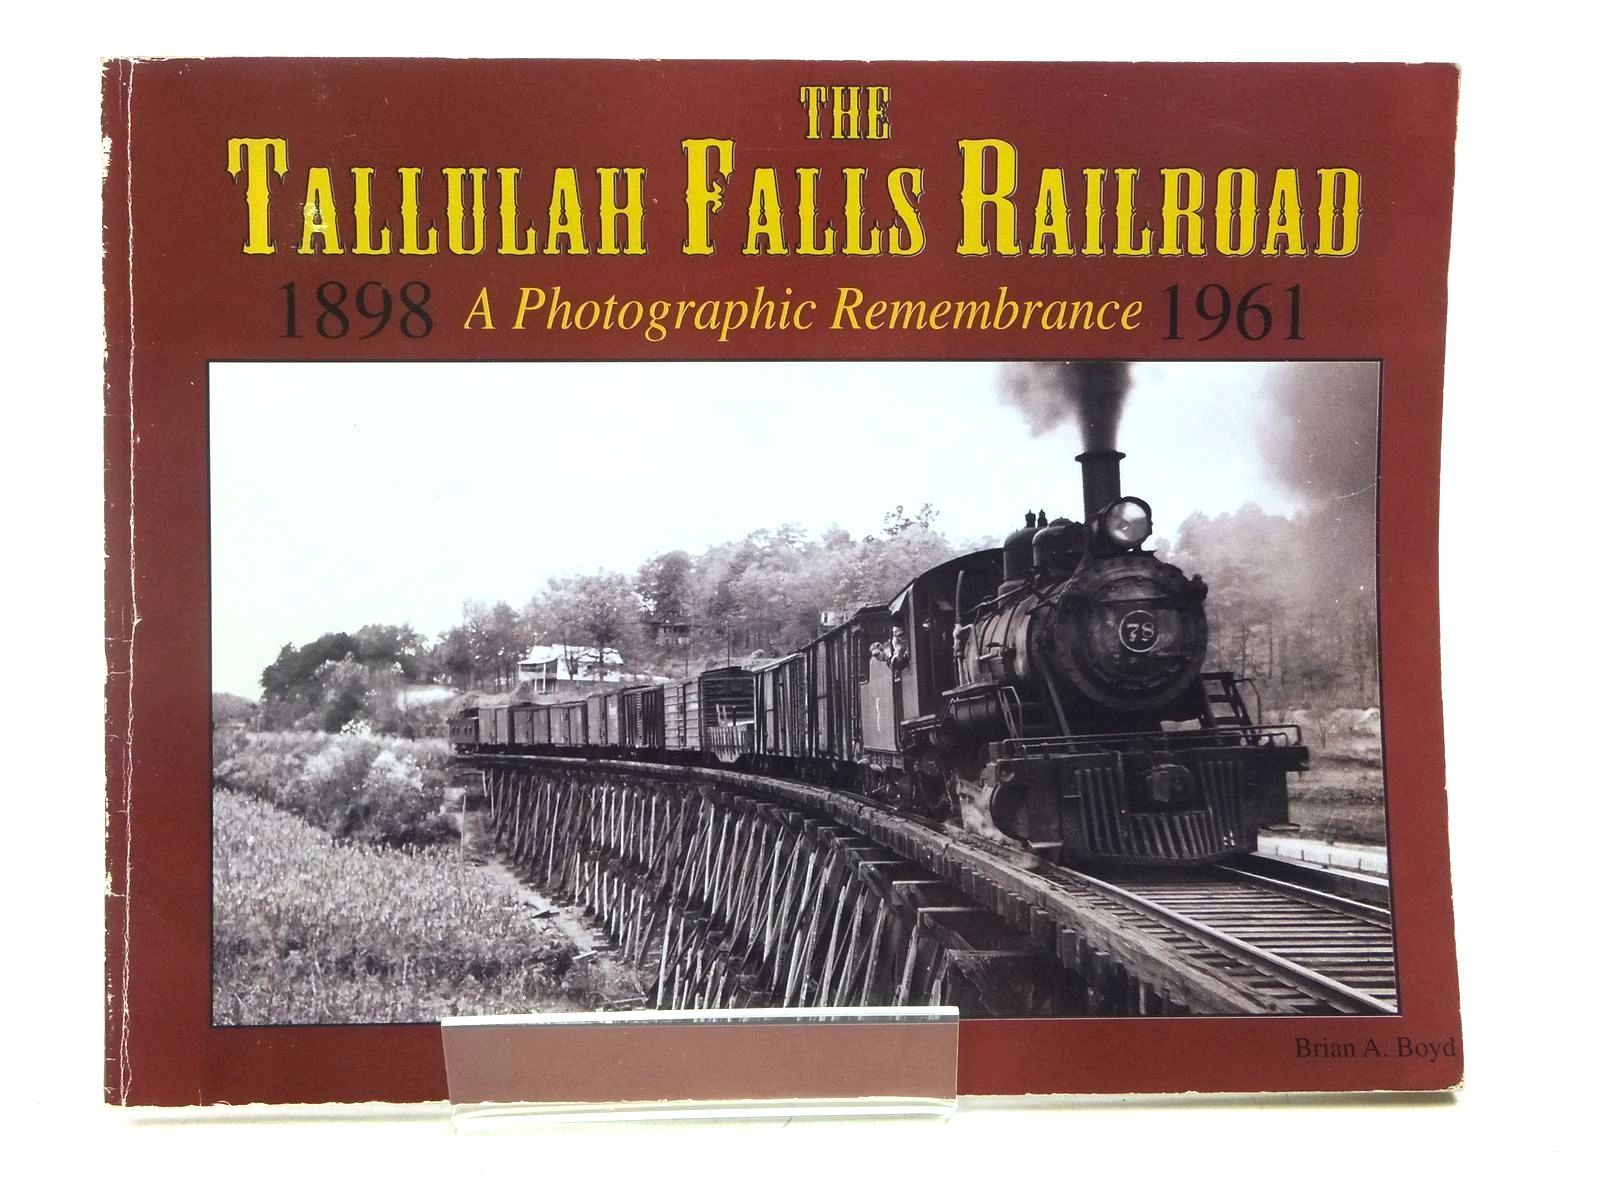 Photo of THE TALLULAH FALLS RAILROAD A PHOTOGRAPHIC REMEMBRANCE written by Boyd, Brian A. published by Fern Creek Press (STOCK CODE: 2119156)  for sale by Stella & Rose's Books